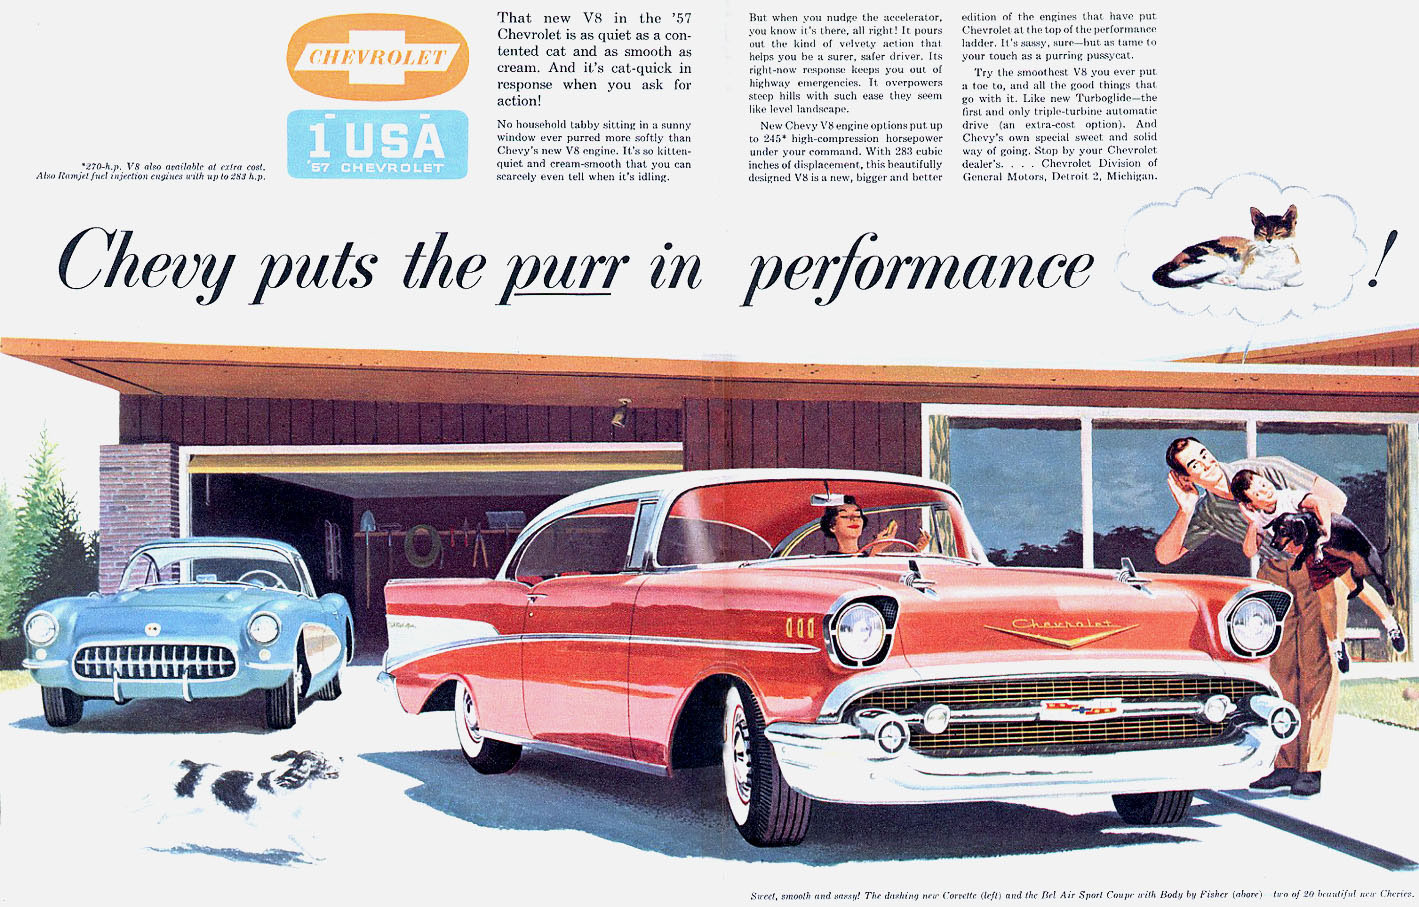 1957-Chevrolet-V8-advert.jpg